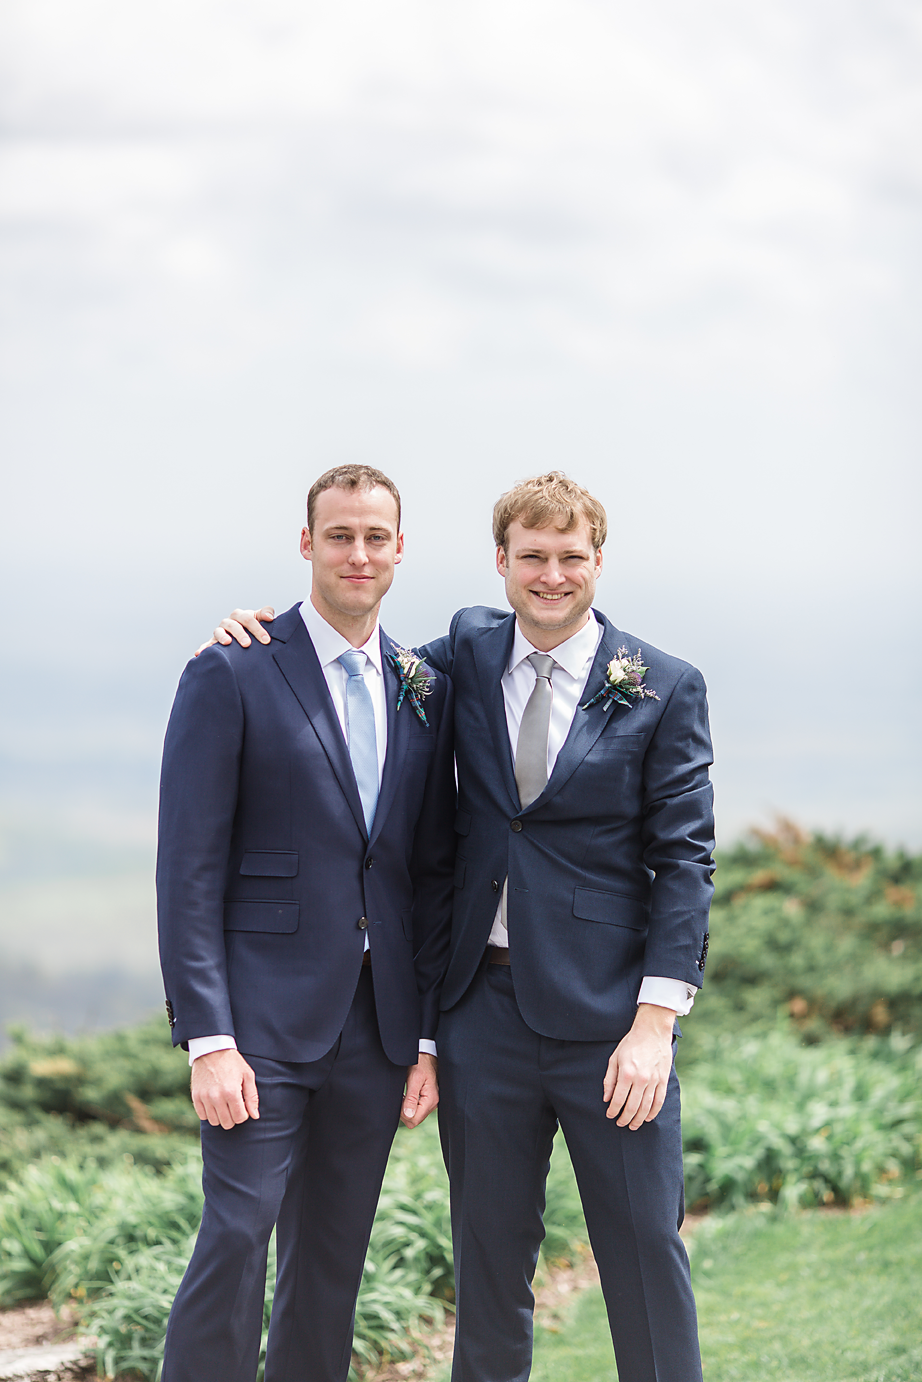 Dallas Wedding Photographer Glassy Mountain Chapel Greenville South Carolina scottish wedding groom and best man kate marie portraiture.png